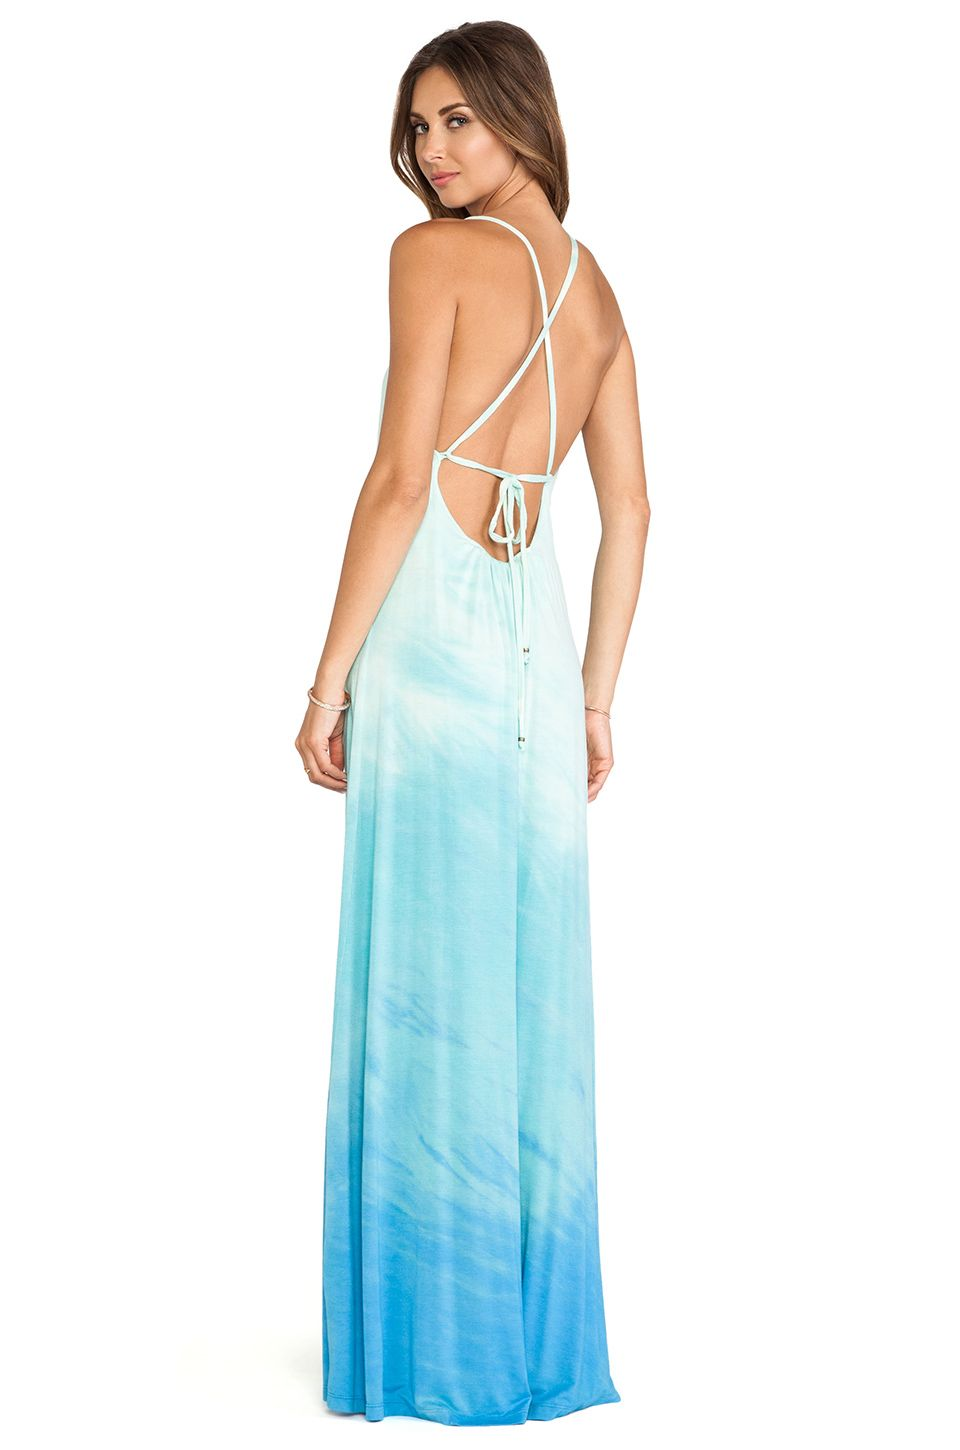 Gypsy 05   Summer 2014   Pinterest   Maxi dresses, Turquoise and Clothes